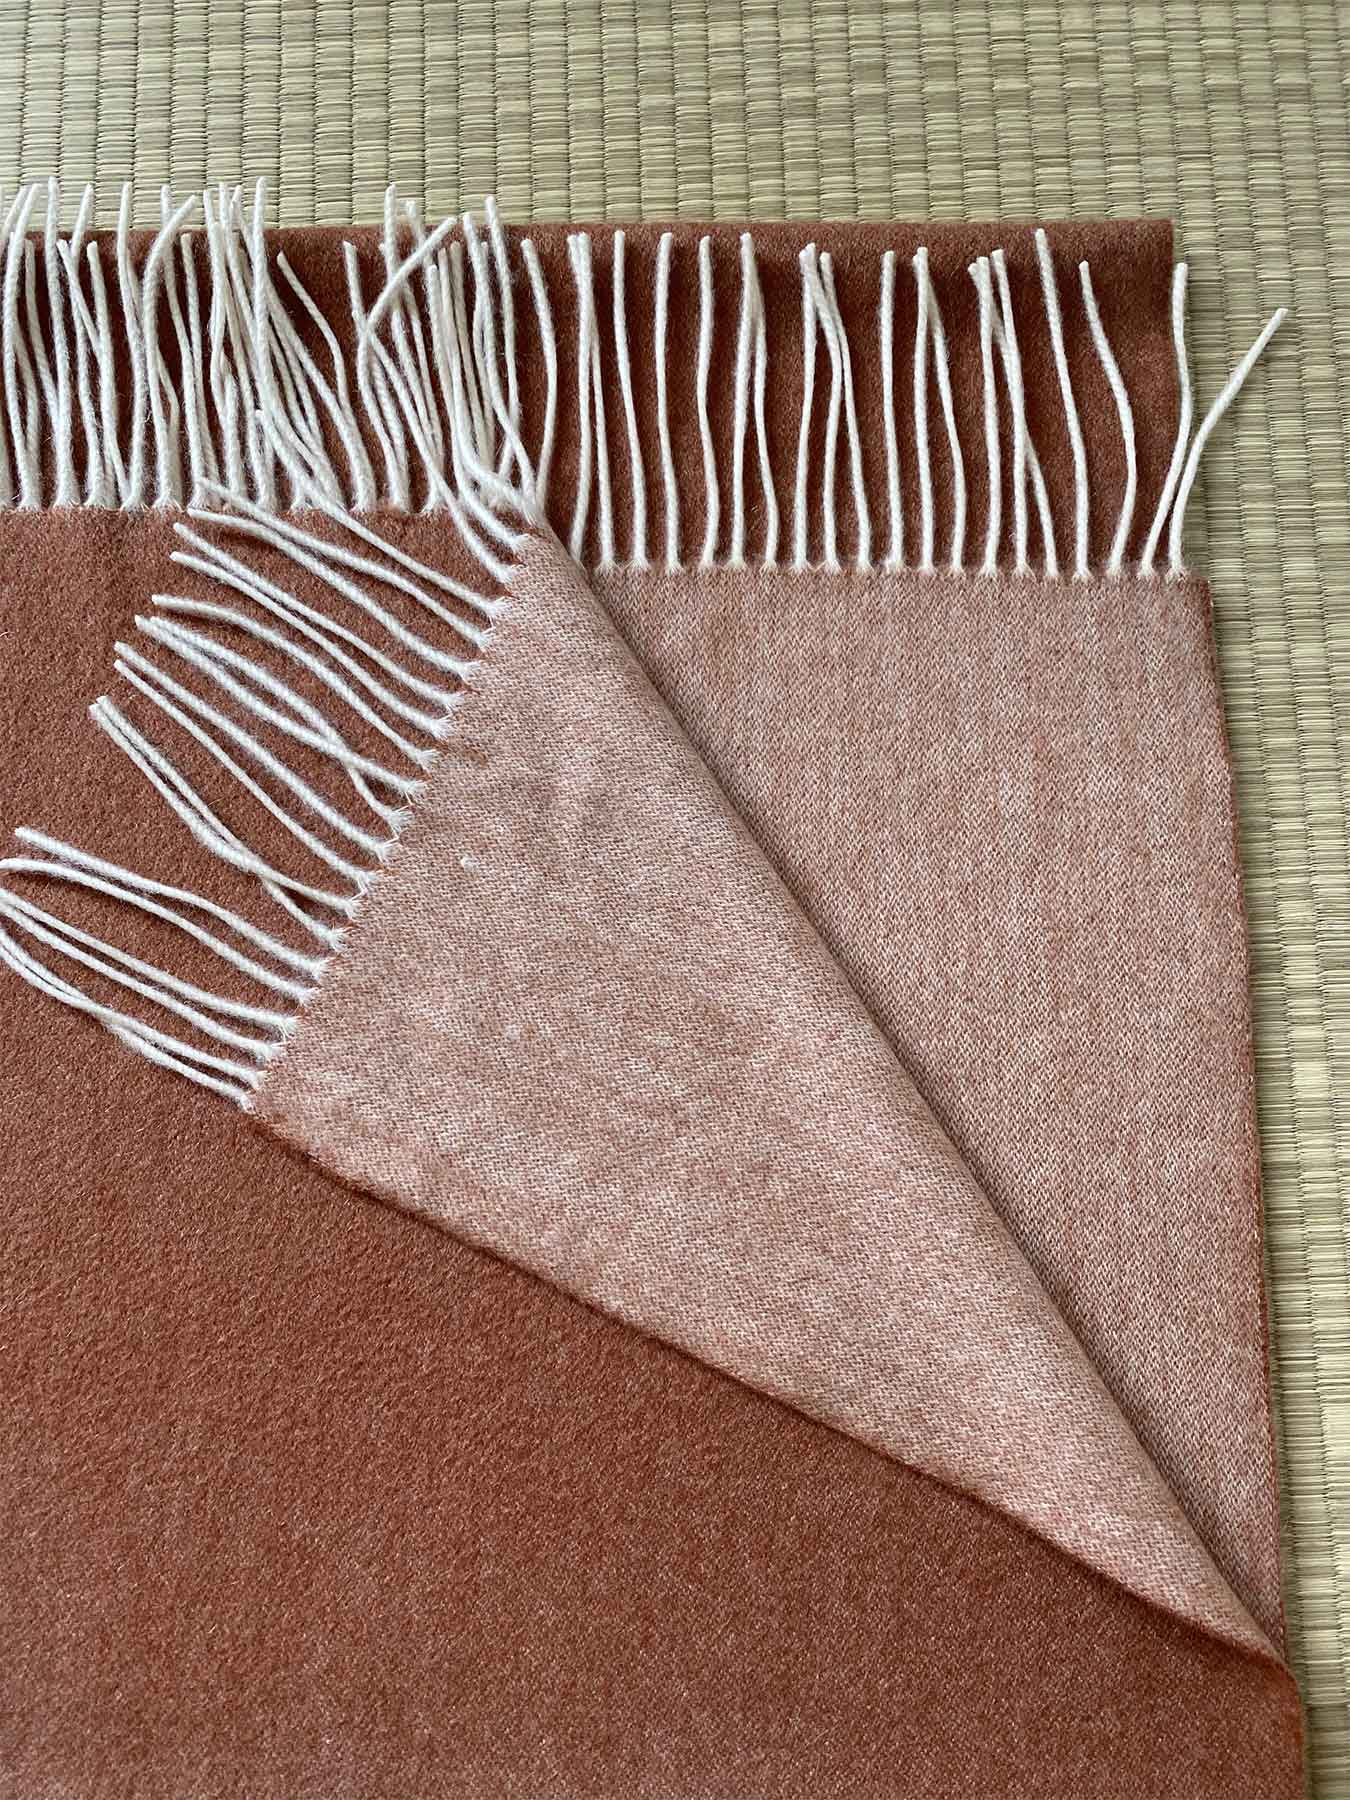 Two-Tone Reversible Cashmere Shawl Burnt Orange 3